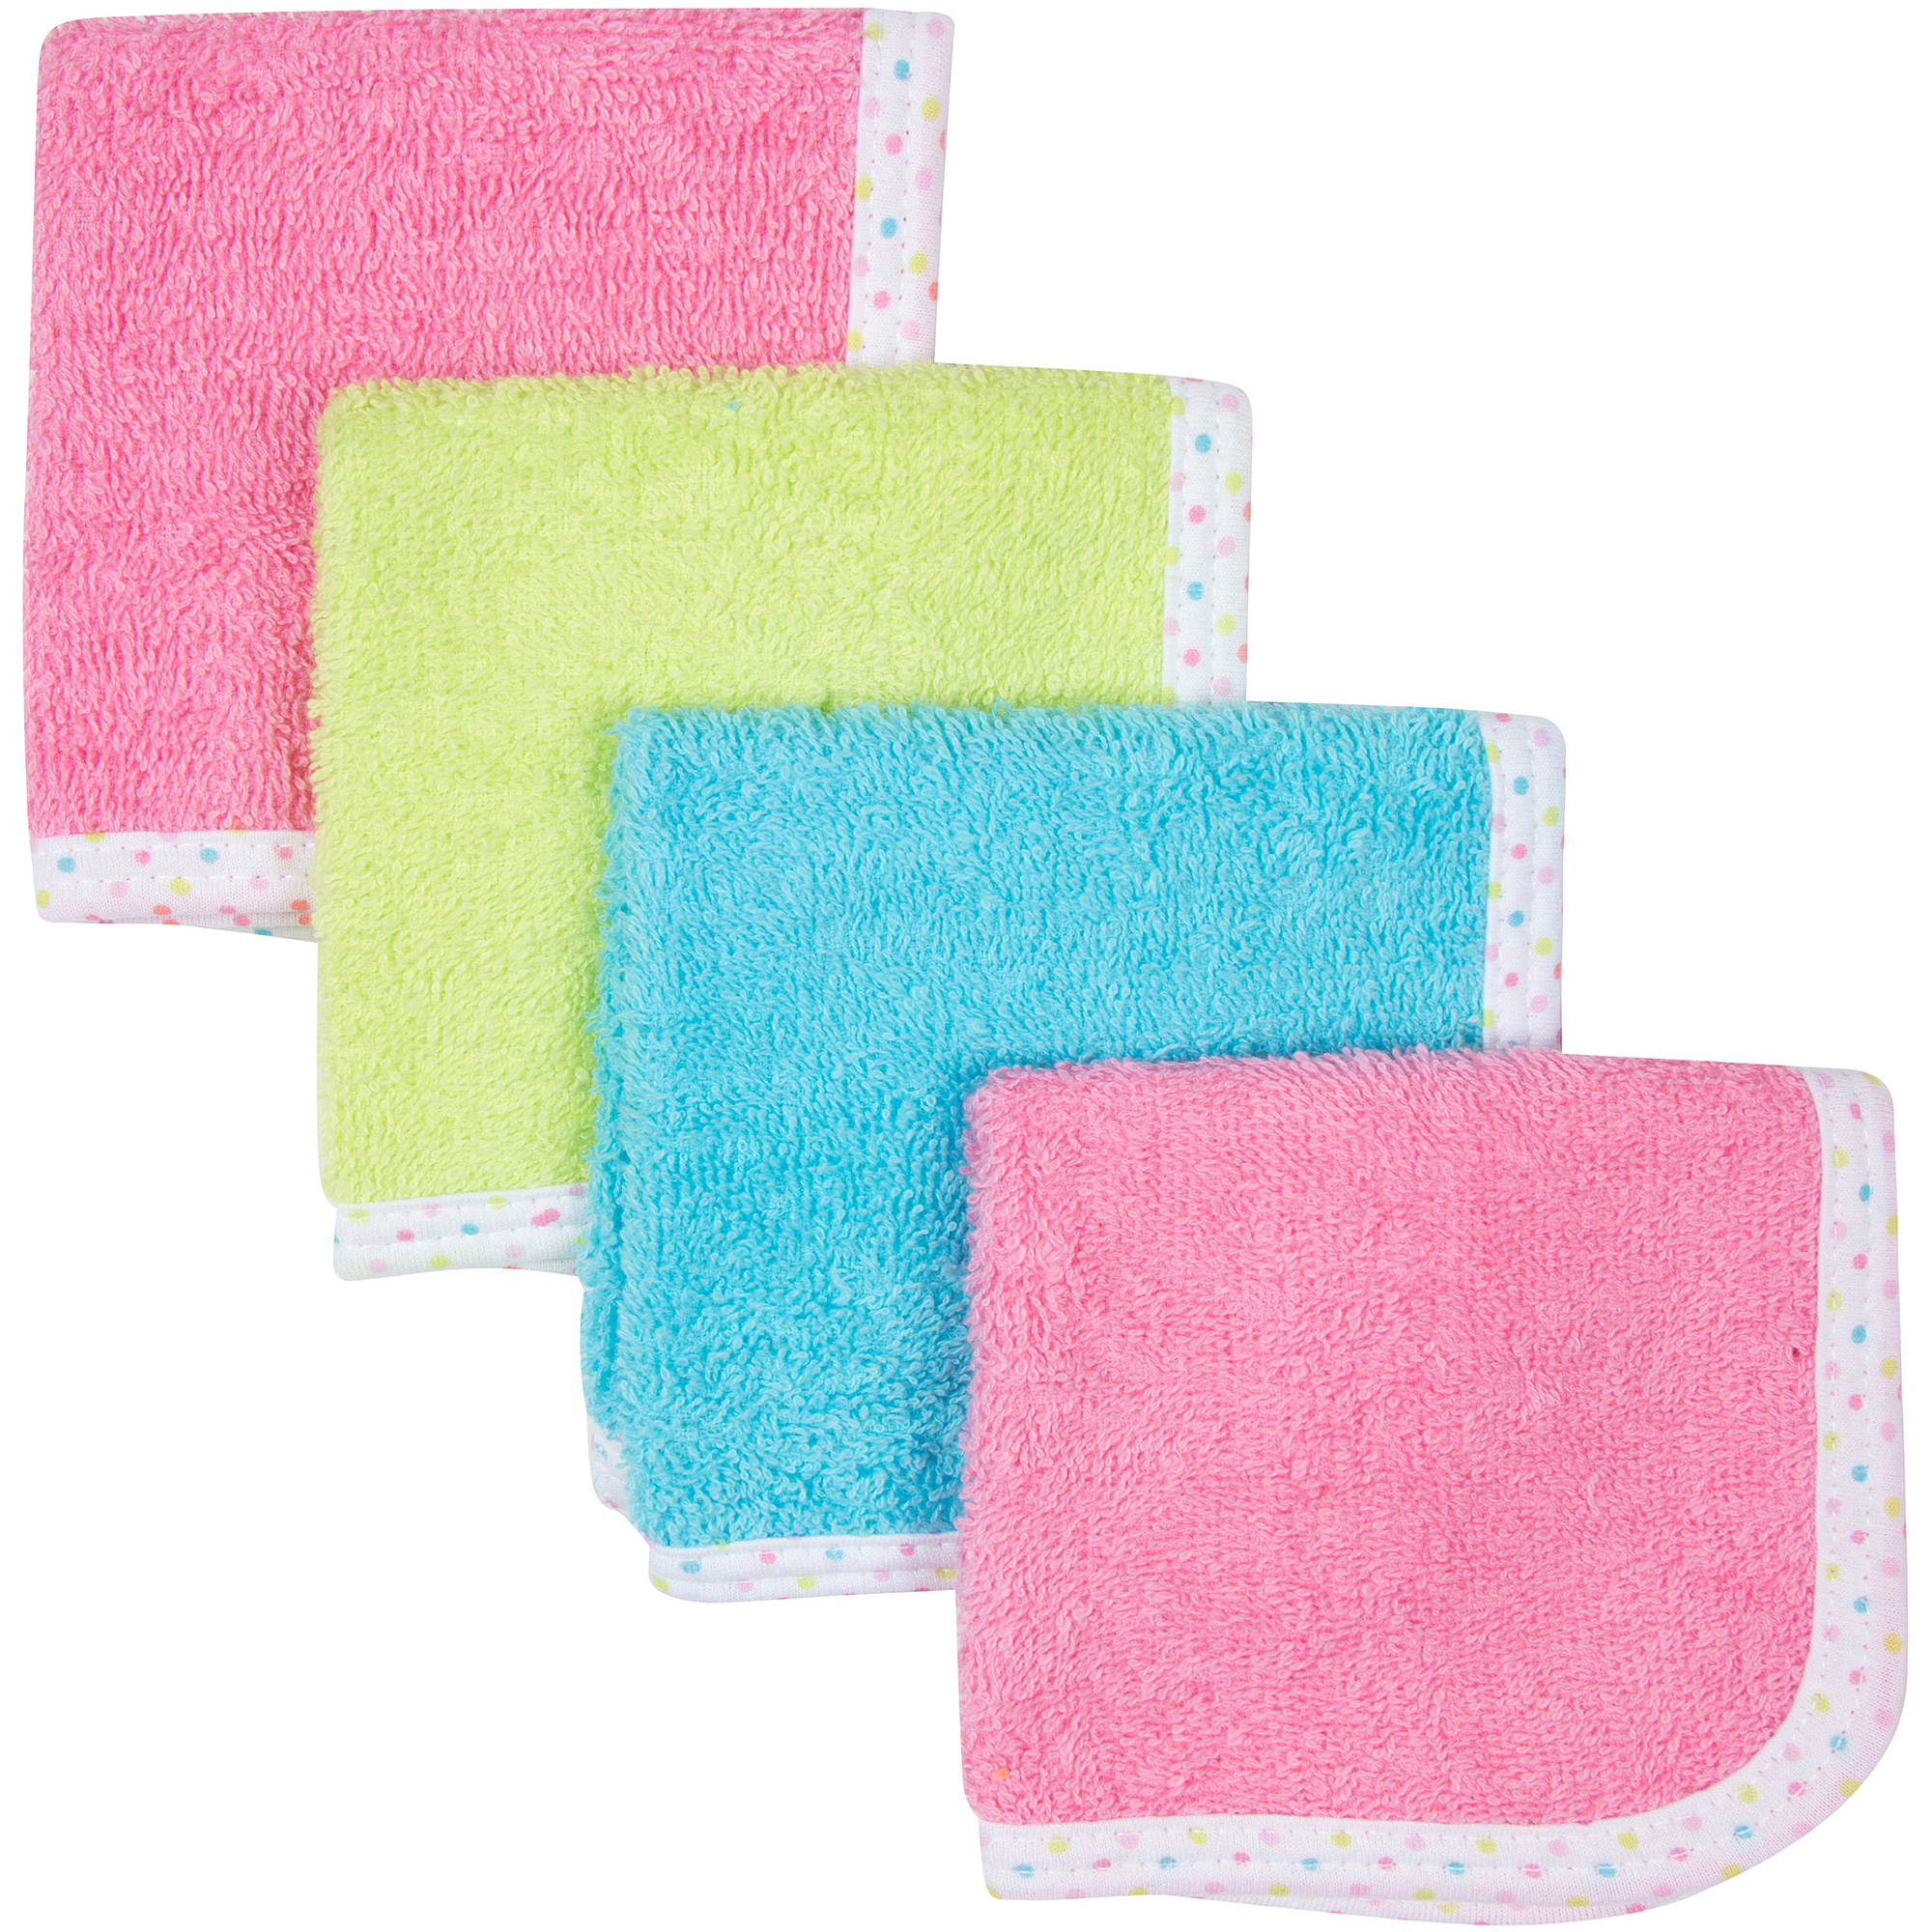 Gerber Newborn Baby Girl Woven Washcloths, 4-Pack